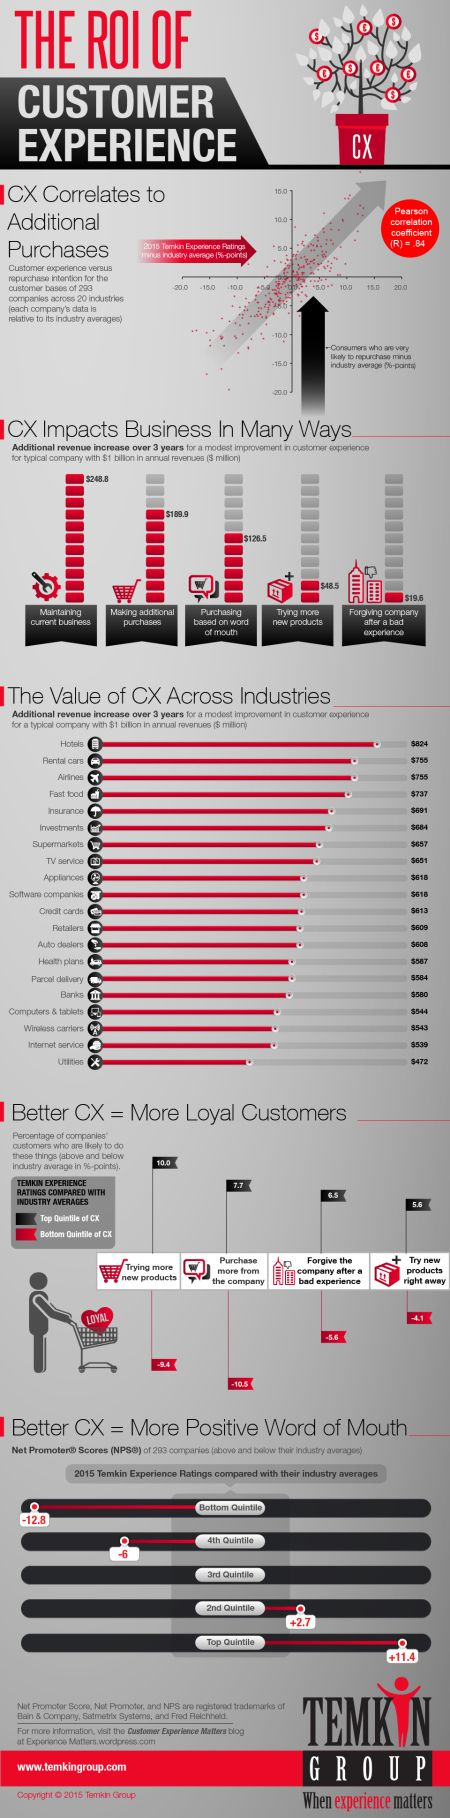 ROI of Customer Experience (Infographic)